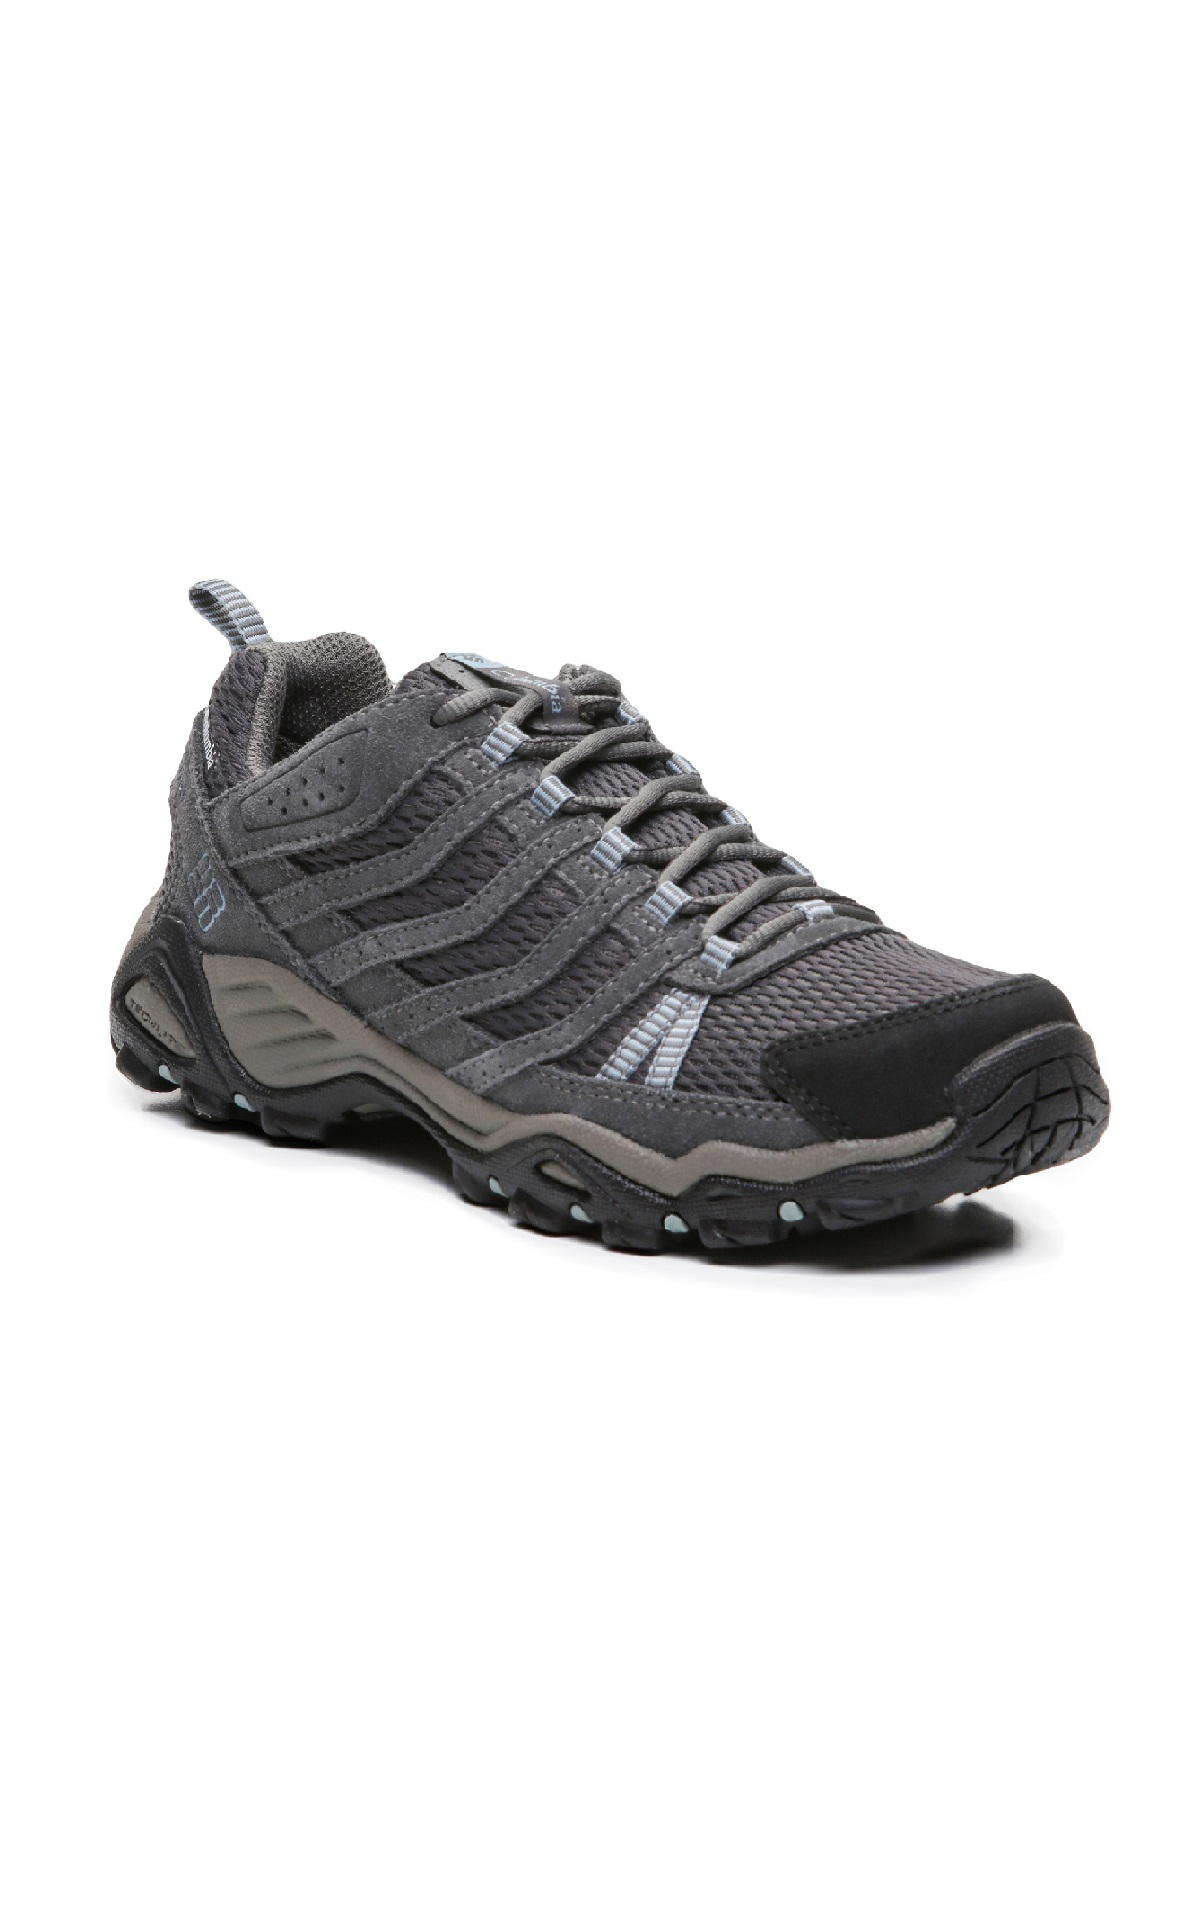 Grey waterproof sneakers Columbia